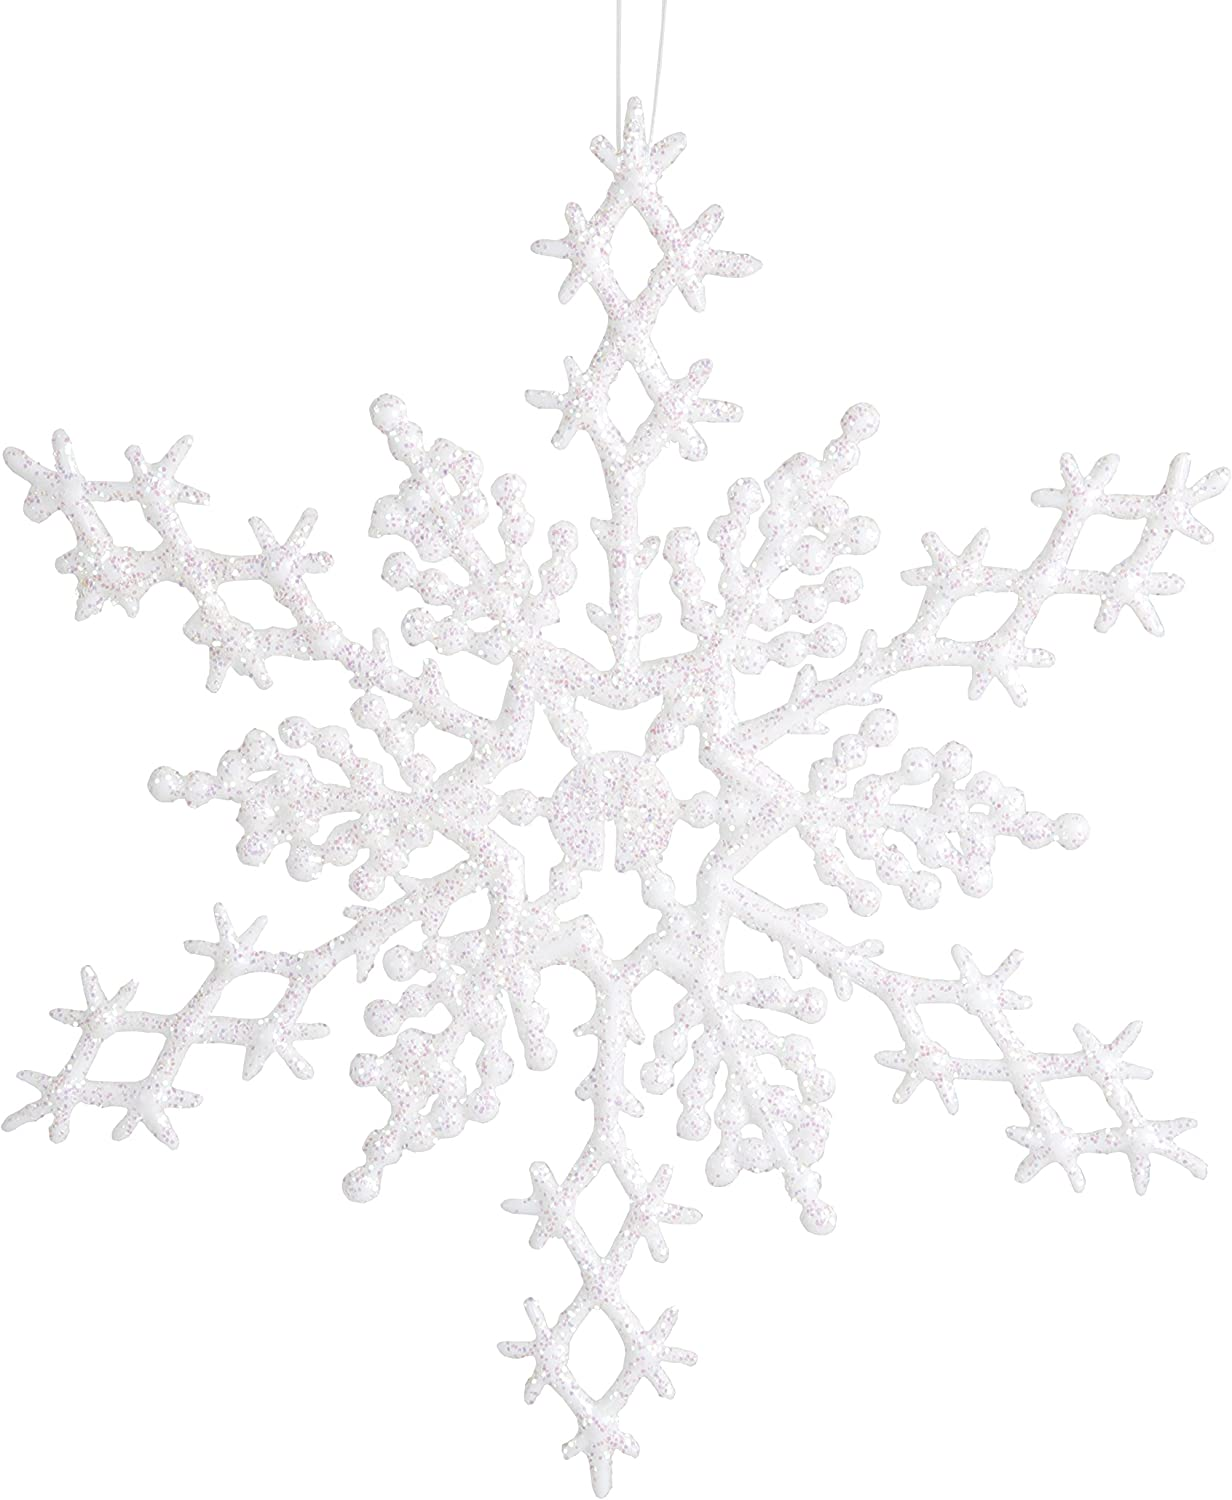 60stk White Snowflake Ornaments Christmas Holiday Party Home dekortions !